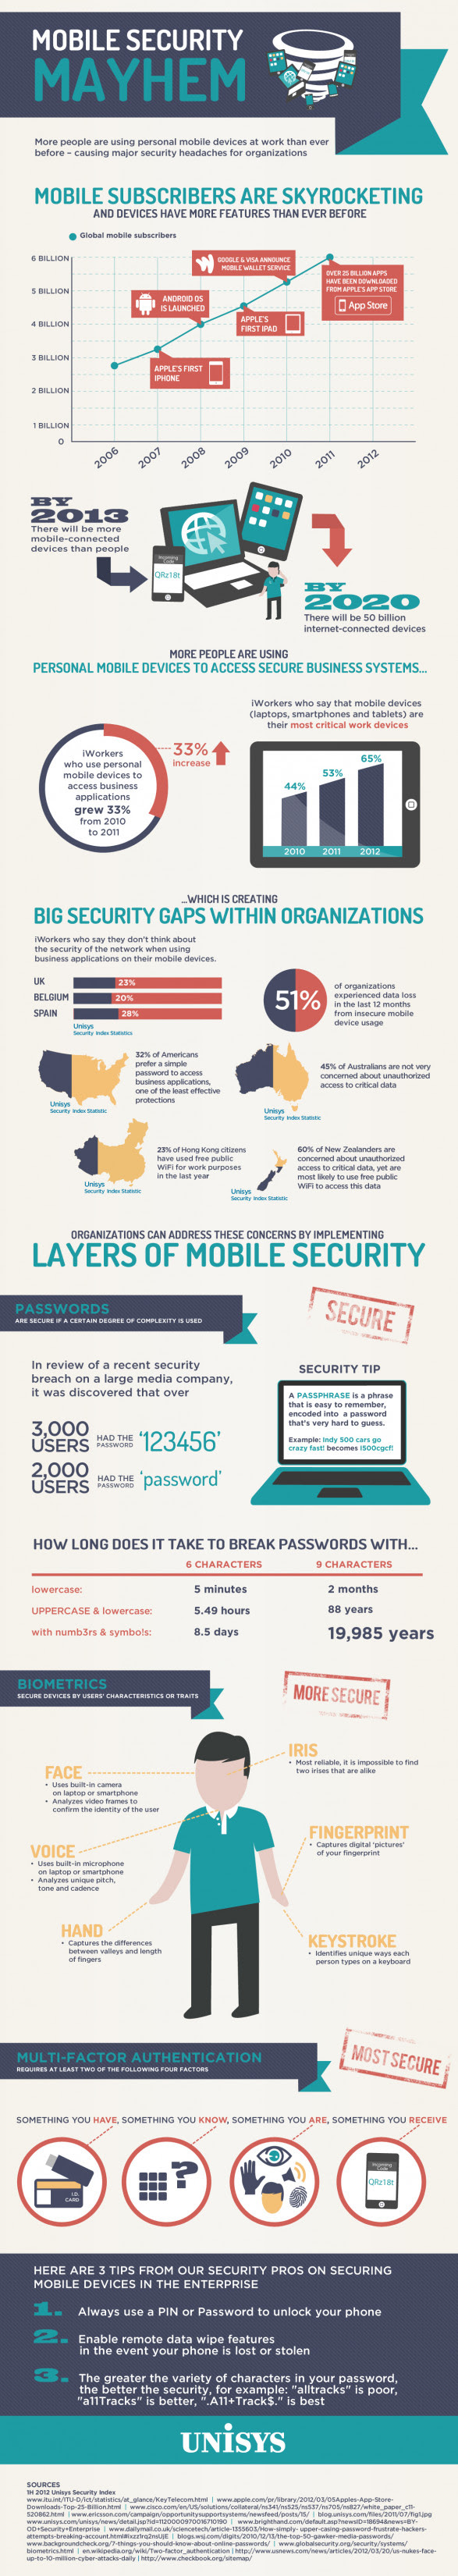 Mobile Security Mayhem: Unisys Security Index